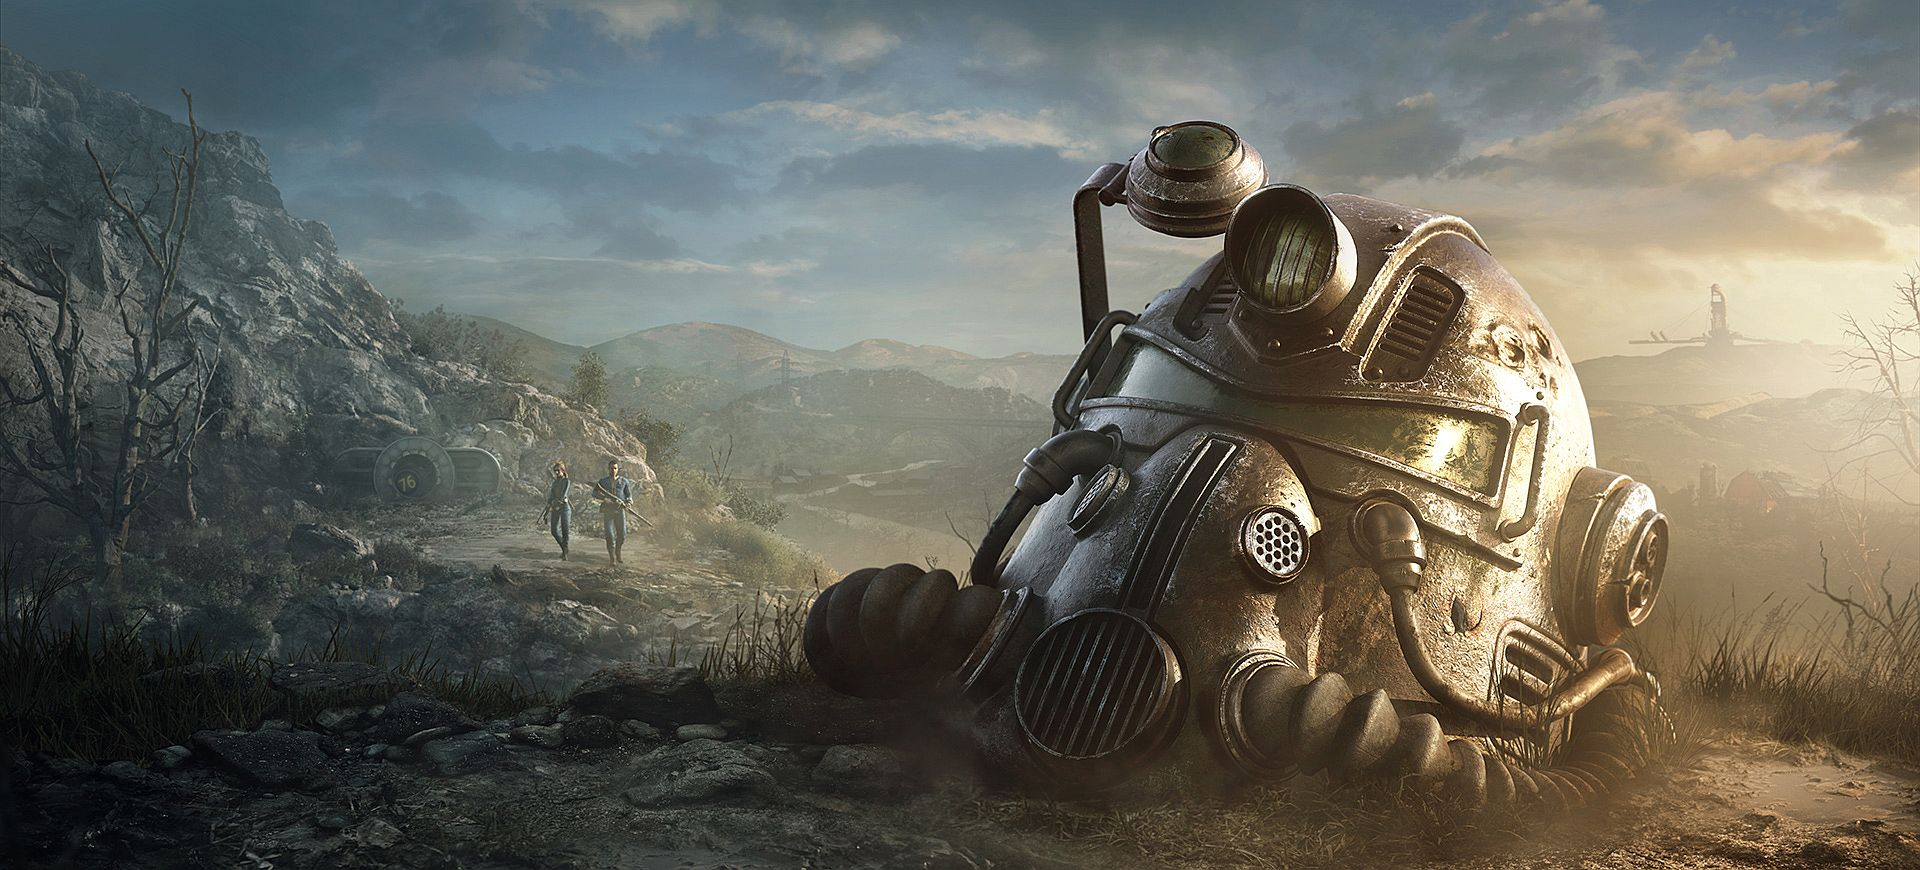 Fallout 76 is already getting review bombed on Metacritic